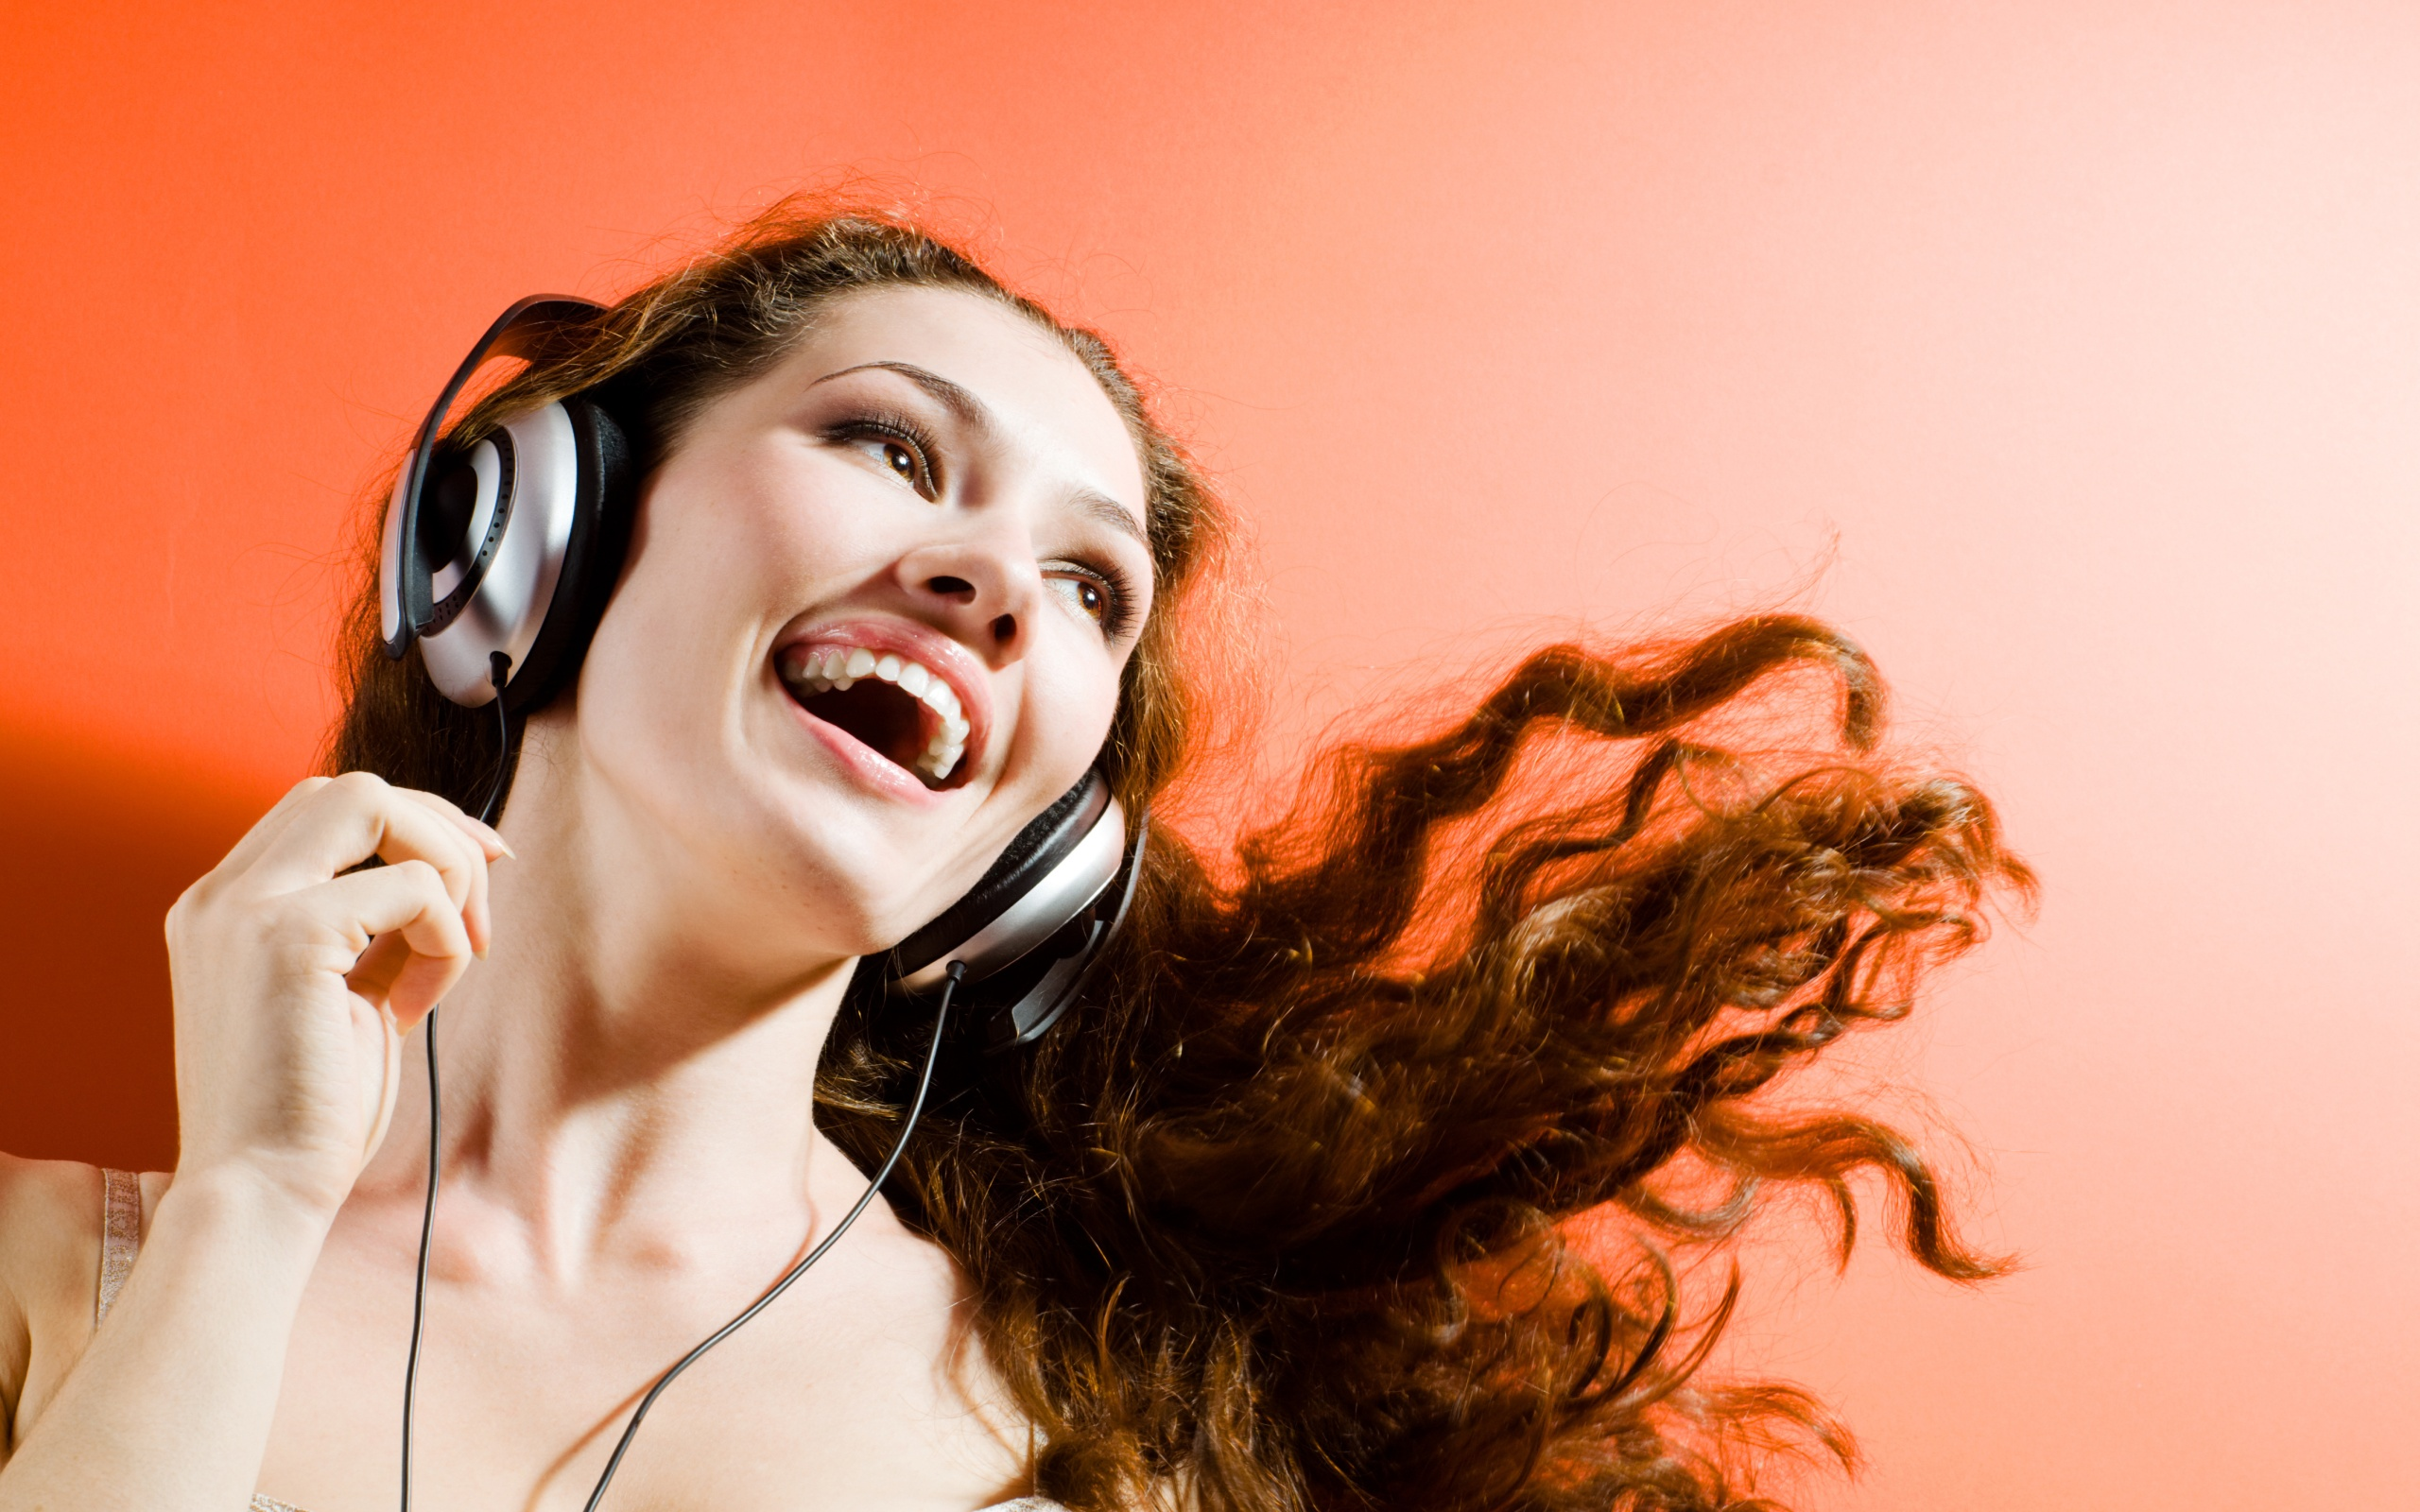 girl and music wallpapers girl and music stock photos